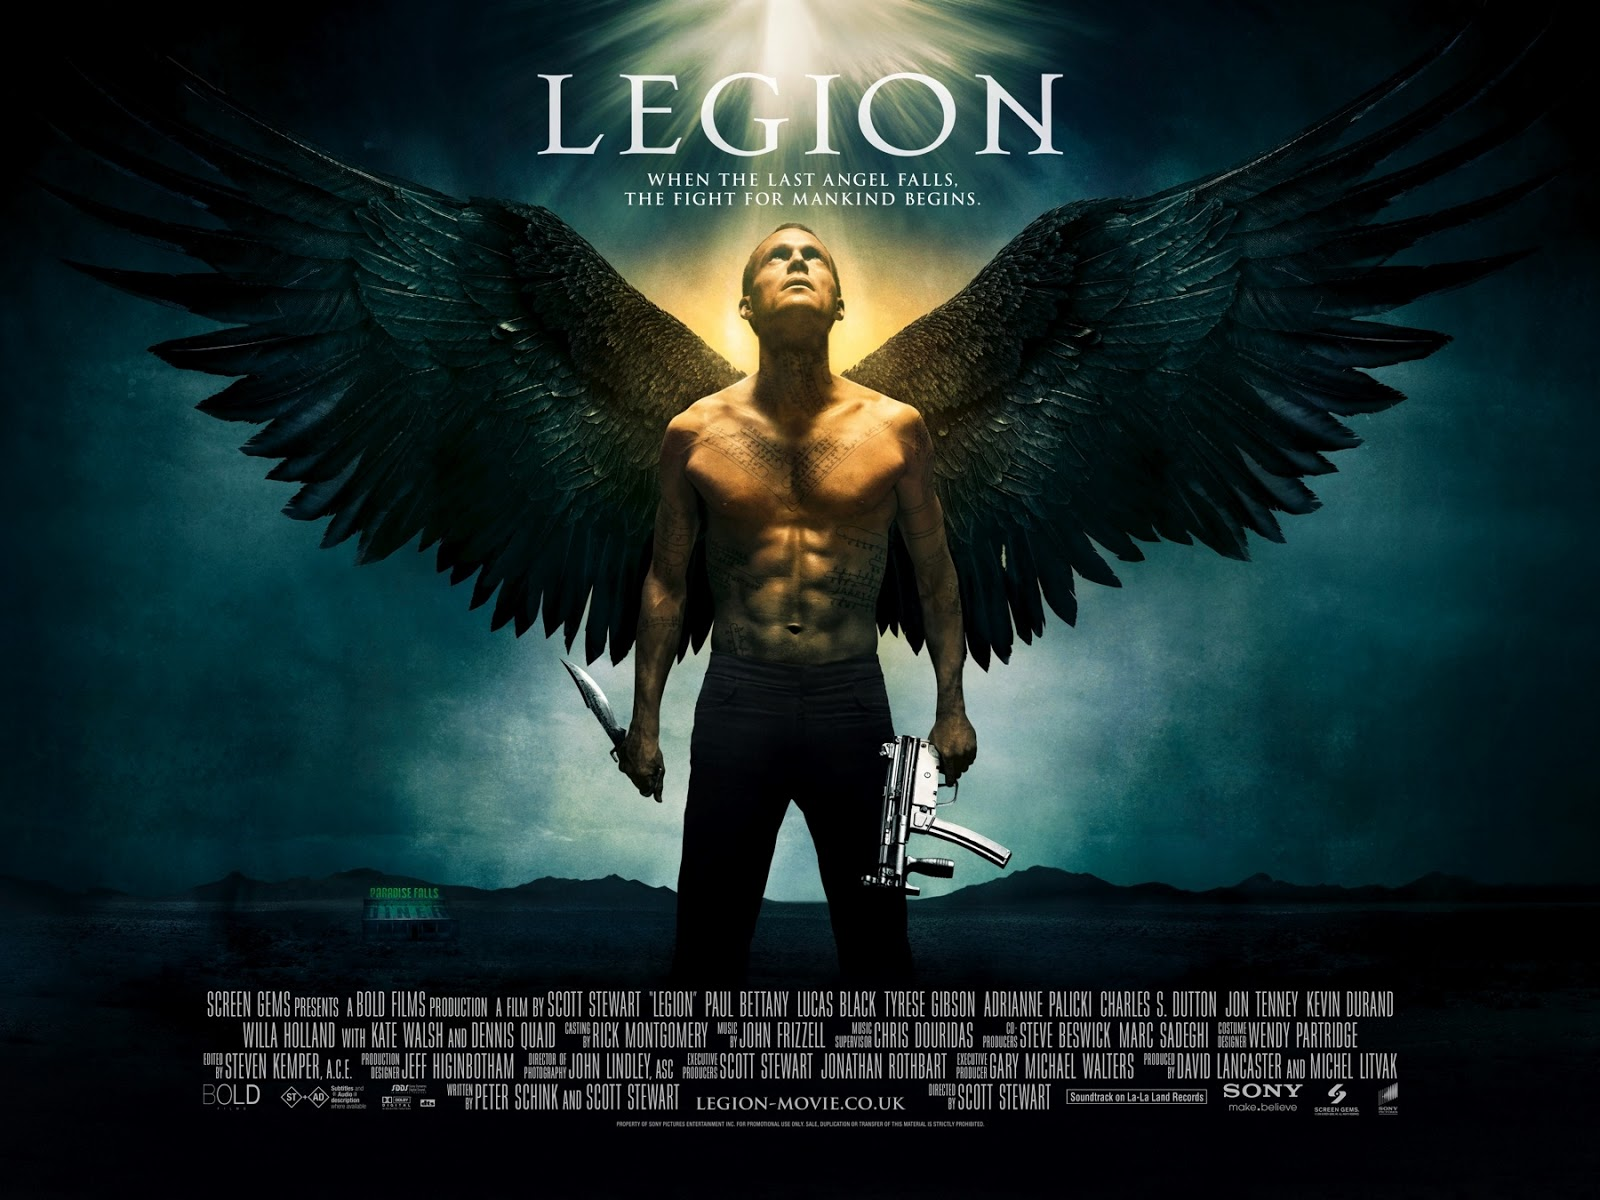 Legion (2009) Movie Worship Legion 1600x1200 Movie-index.com